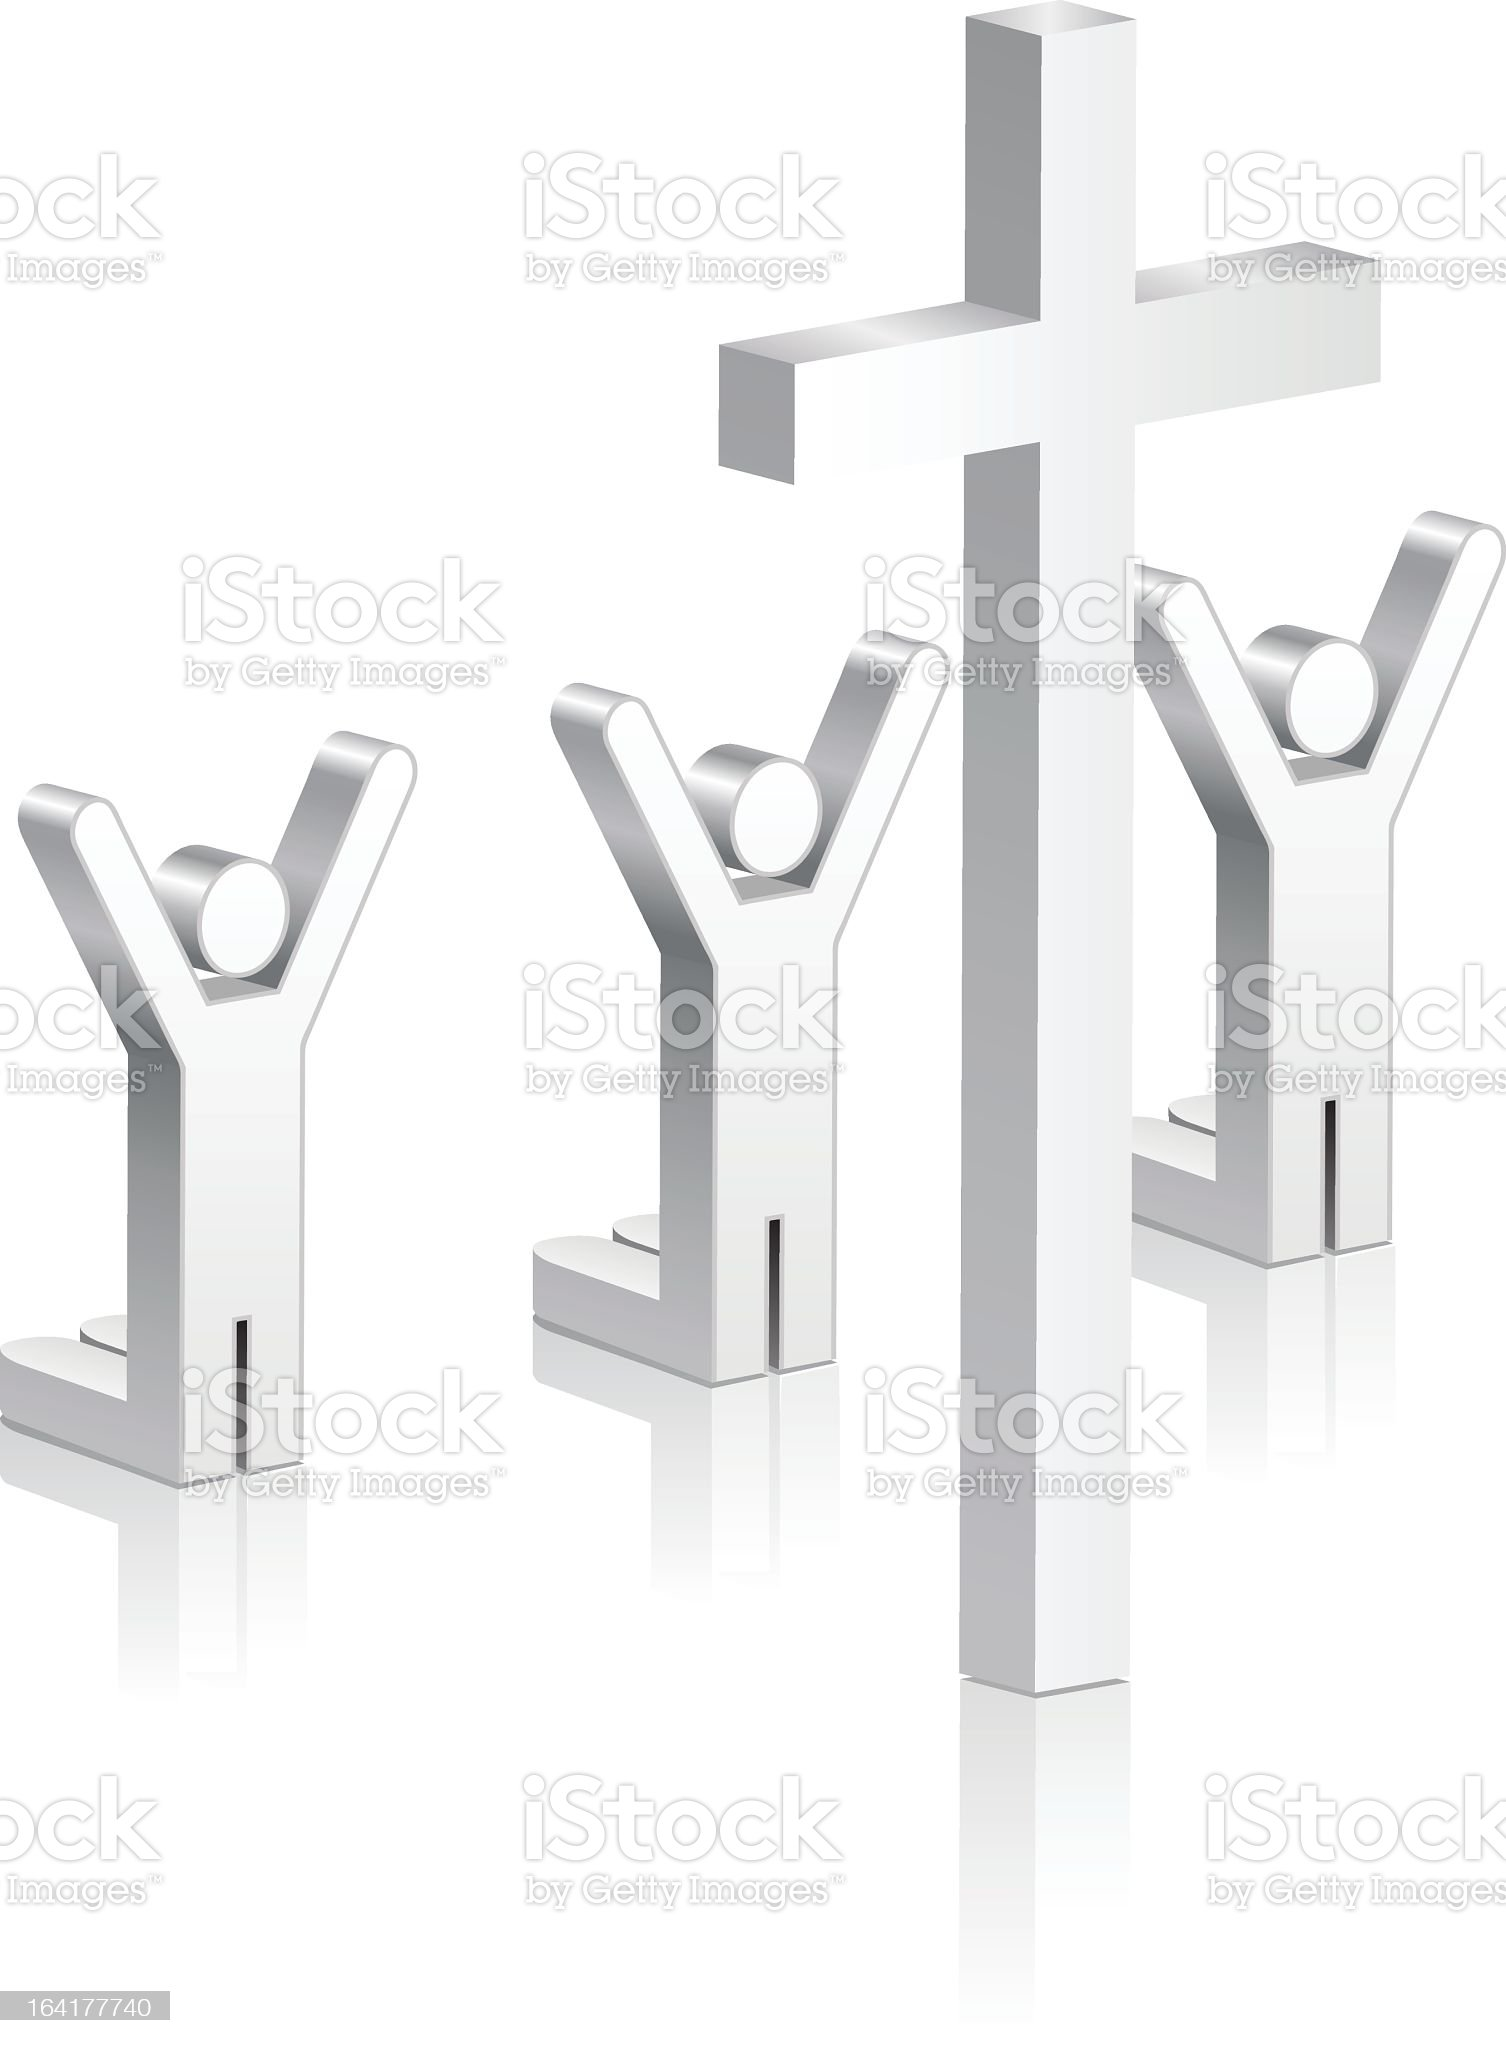 stick figures praying in front of a cross royalty-free stock vector art